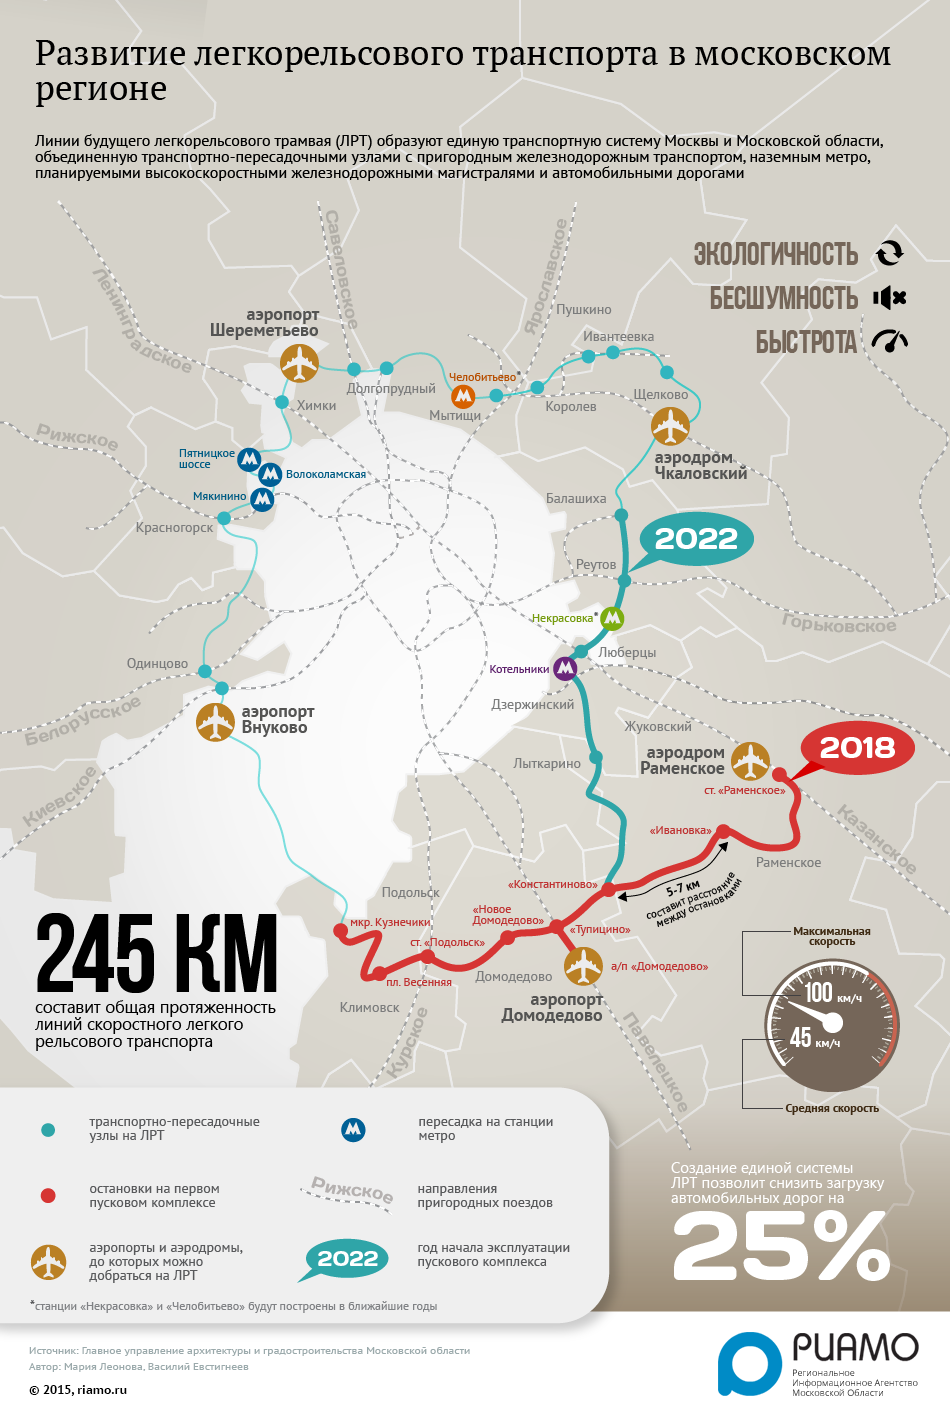 Easy subway in the Moscow region 2019